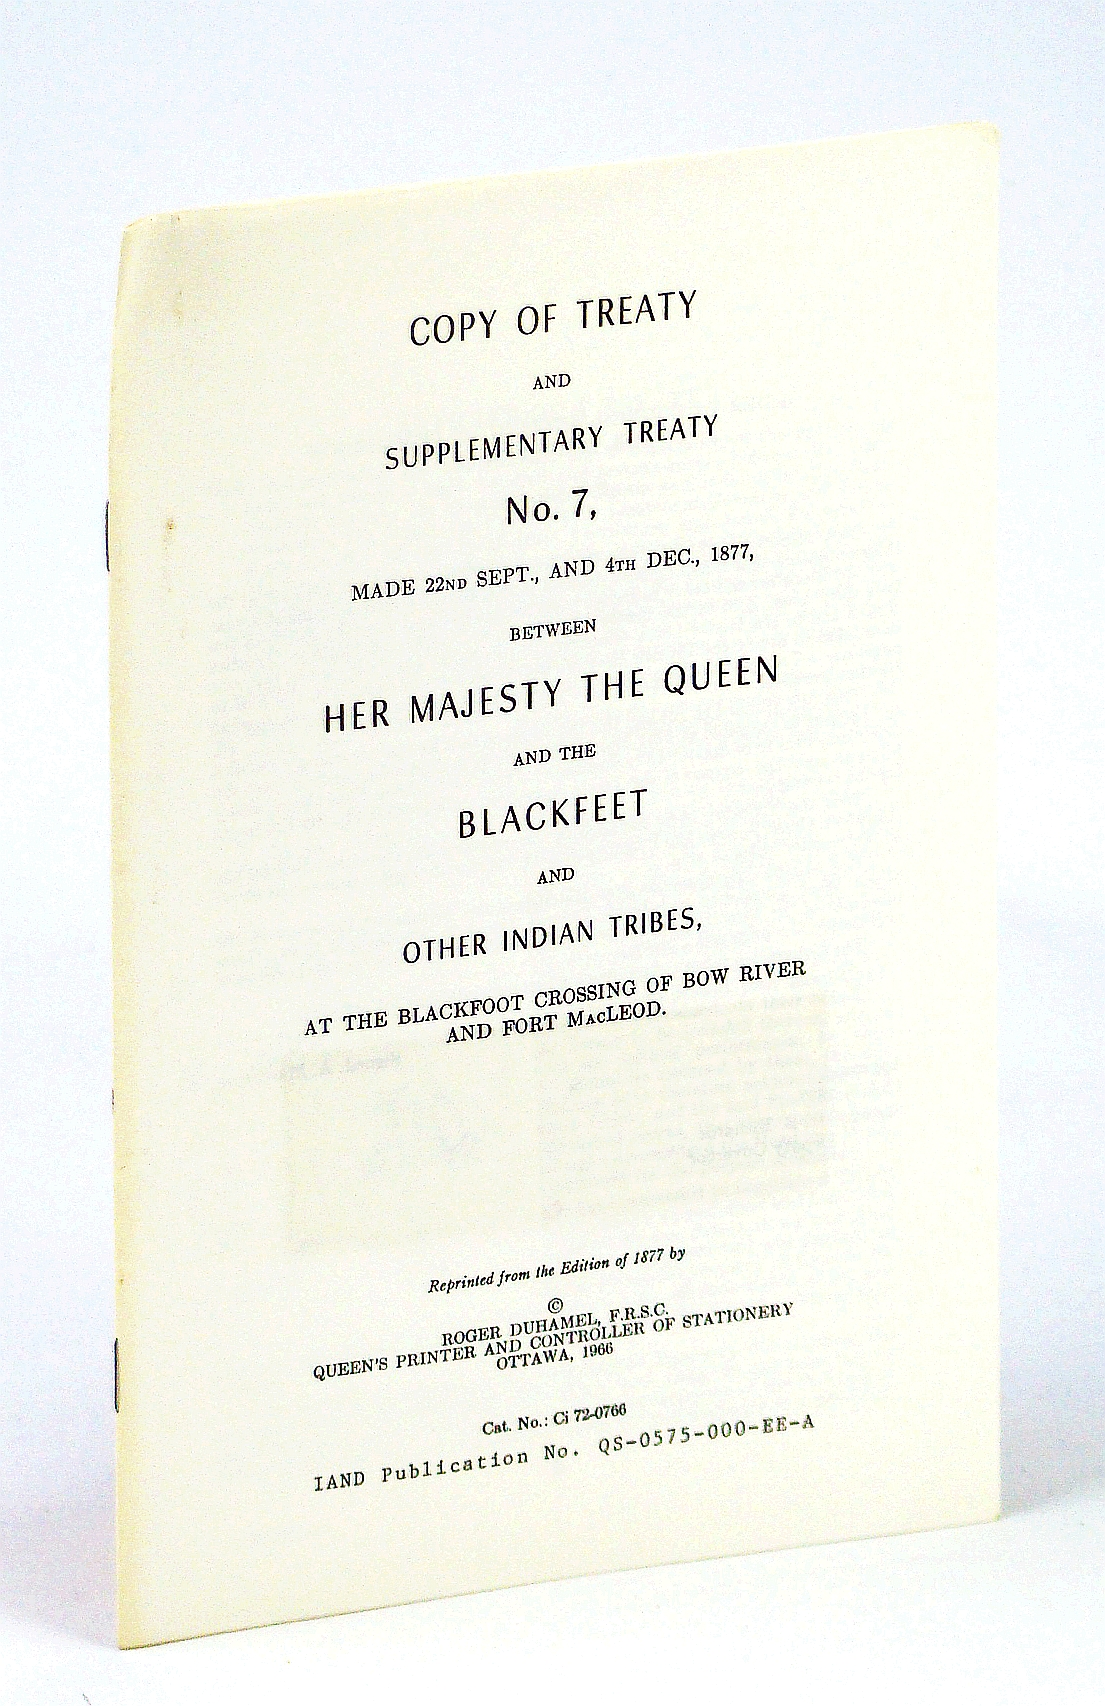 Image for Copy of Treaty and Supplementary Treaty No. 7 (Seven), Made 22nd Sept., And 4th Dec., 1877 Between Her Majesty the Queen and the Blackfeet and Other Indian Trives, at the Blackfoot Crossing of Bow River and Fort MacLeod